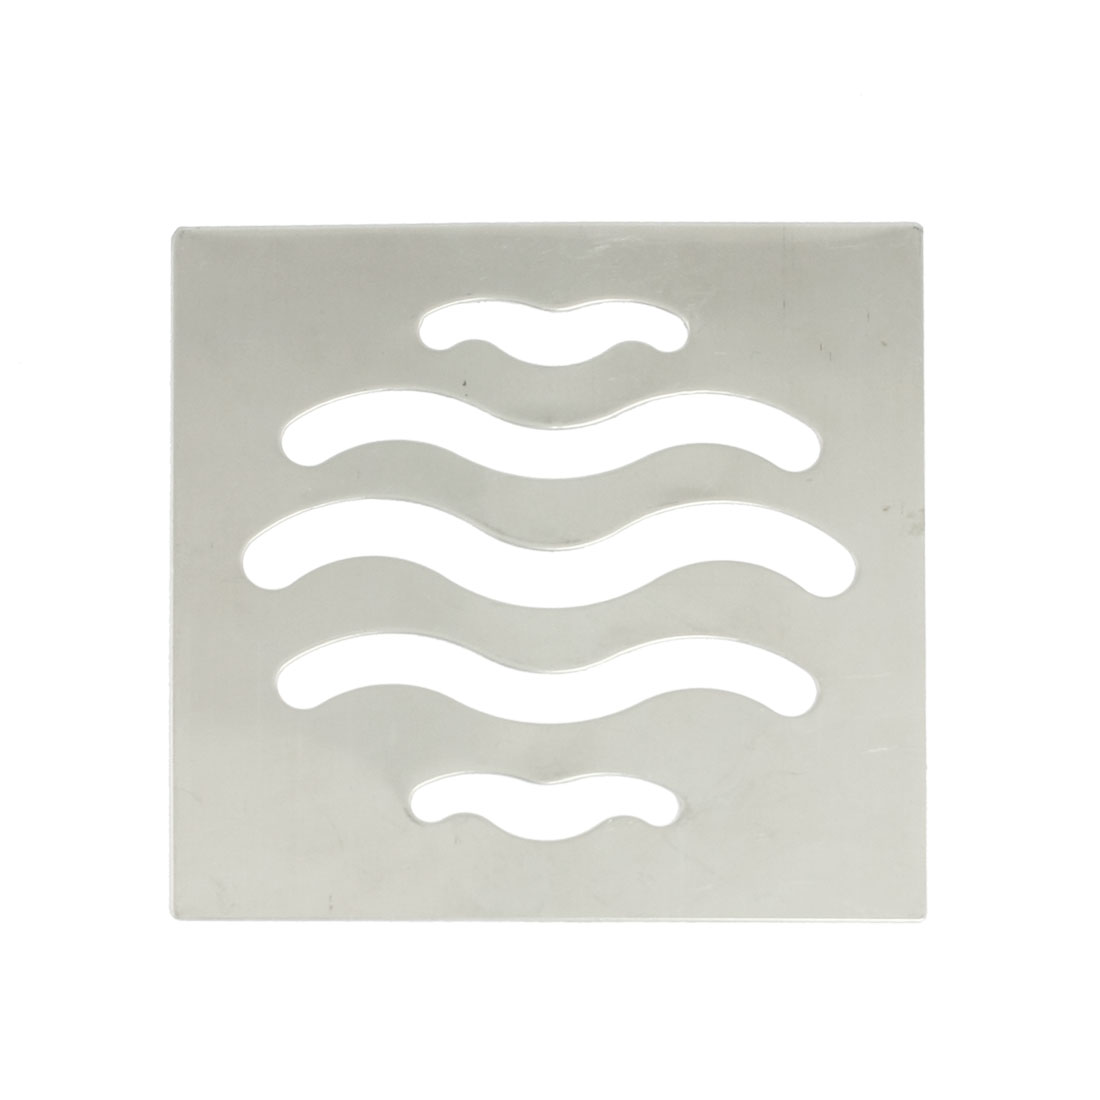 8.8cm x 8.8cm Square Silver Tone Stainless Steel Floor Drain Cover Grate